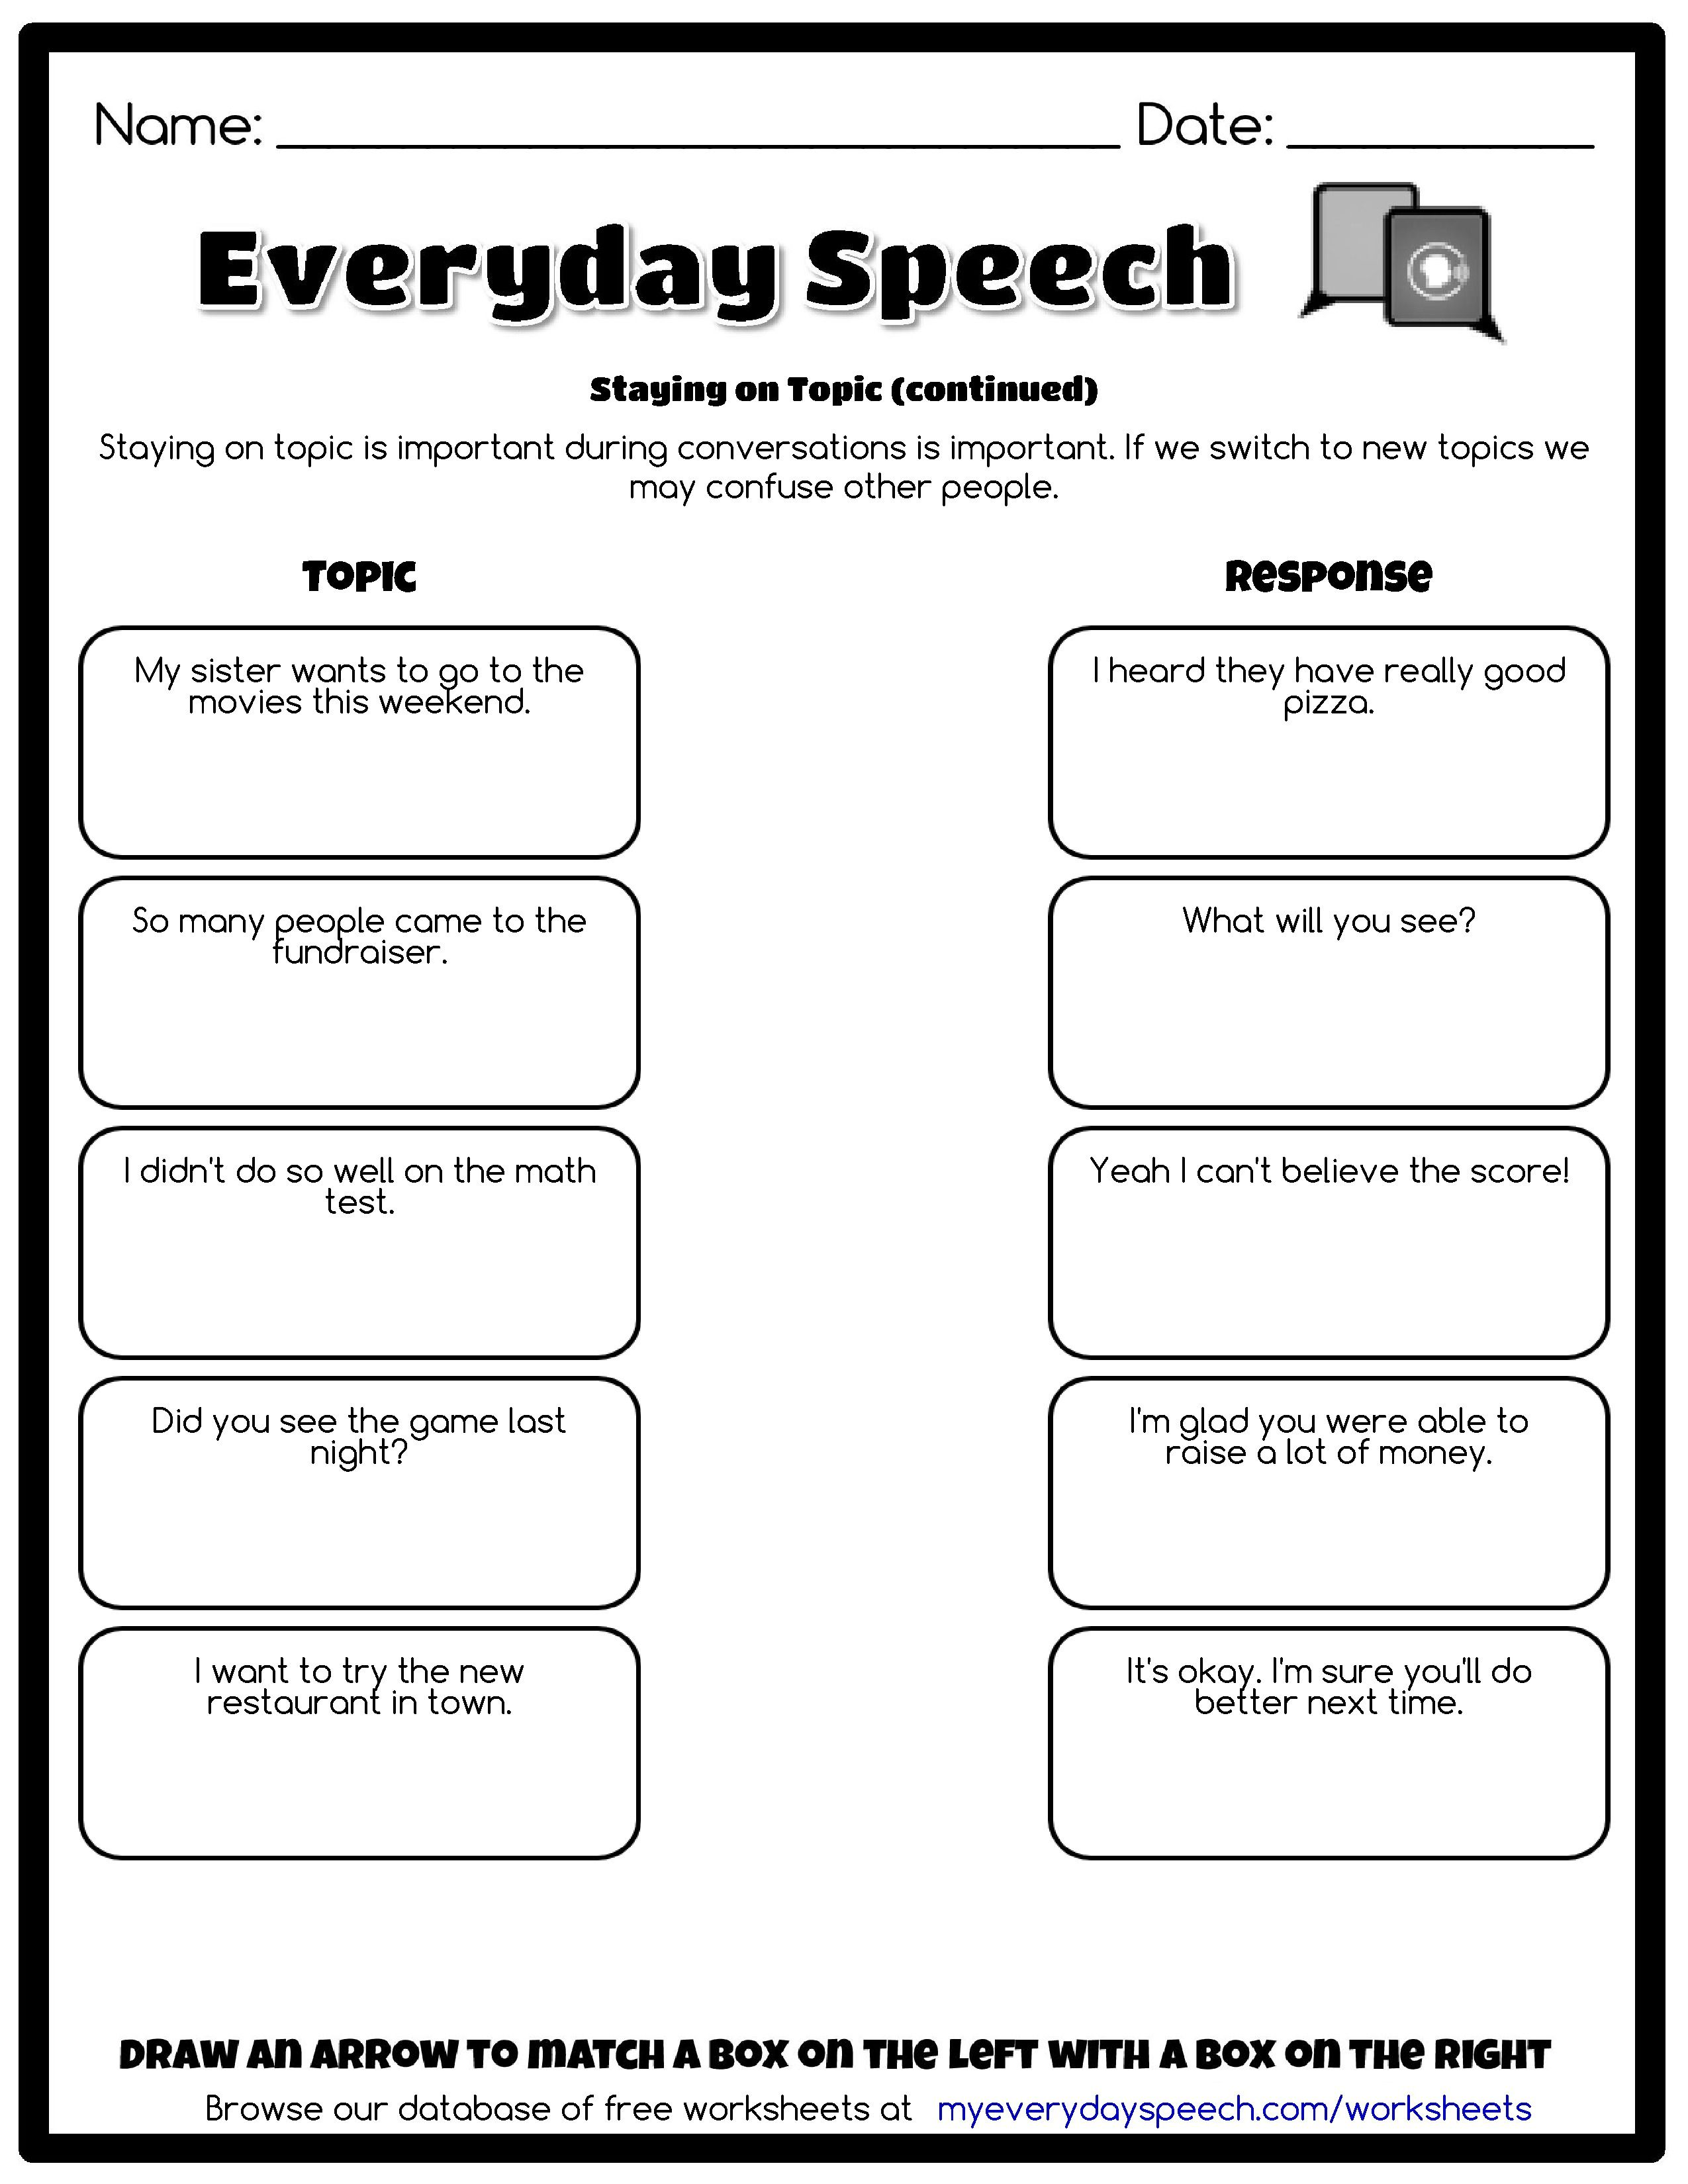 Worksheets Aphasia Therapy Worksheets check out the worksheet i just made using everyday speechs creator staying on topic